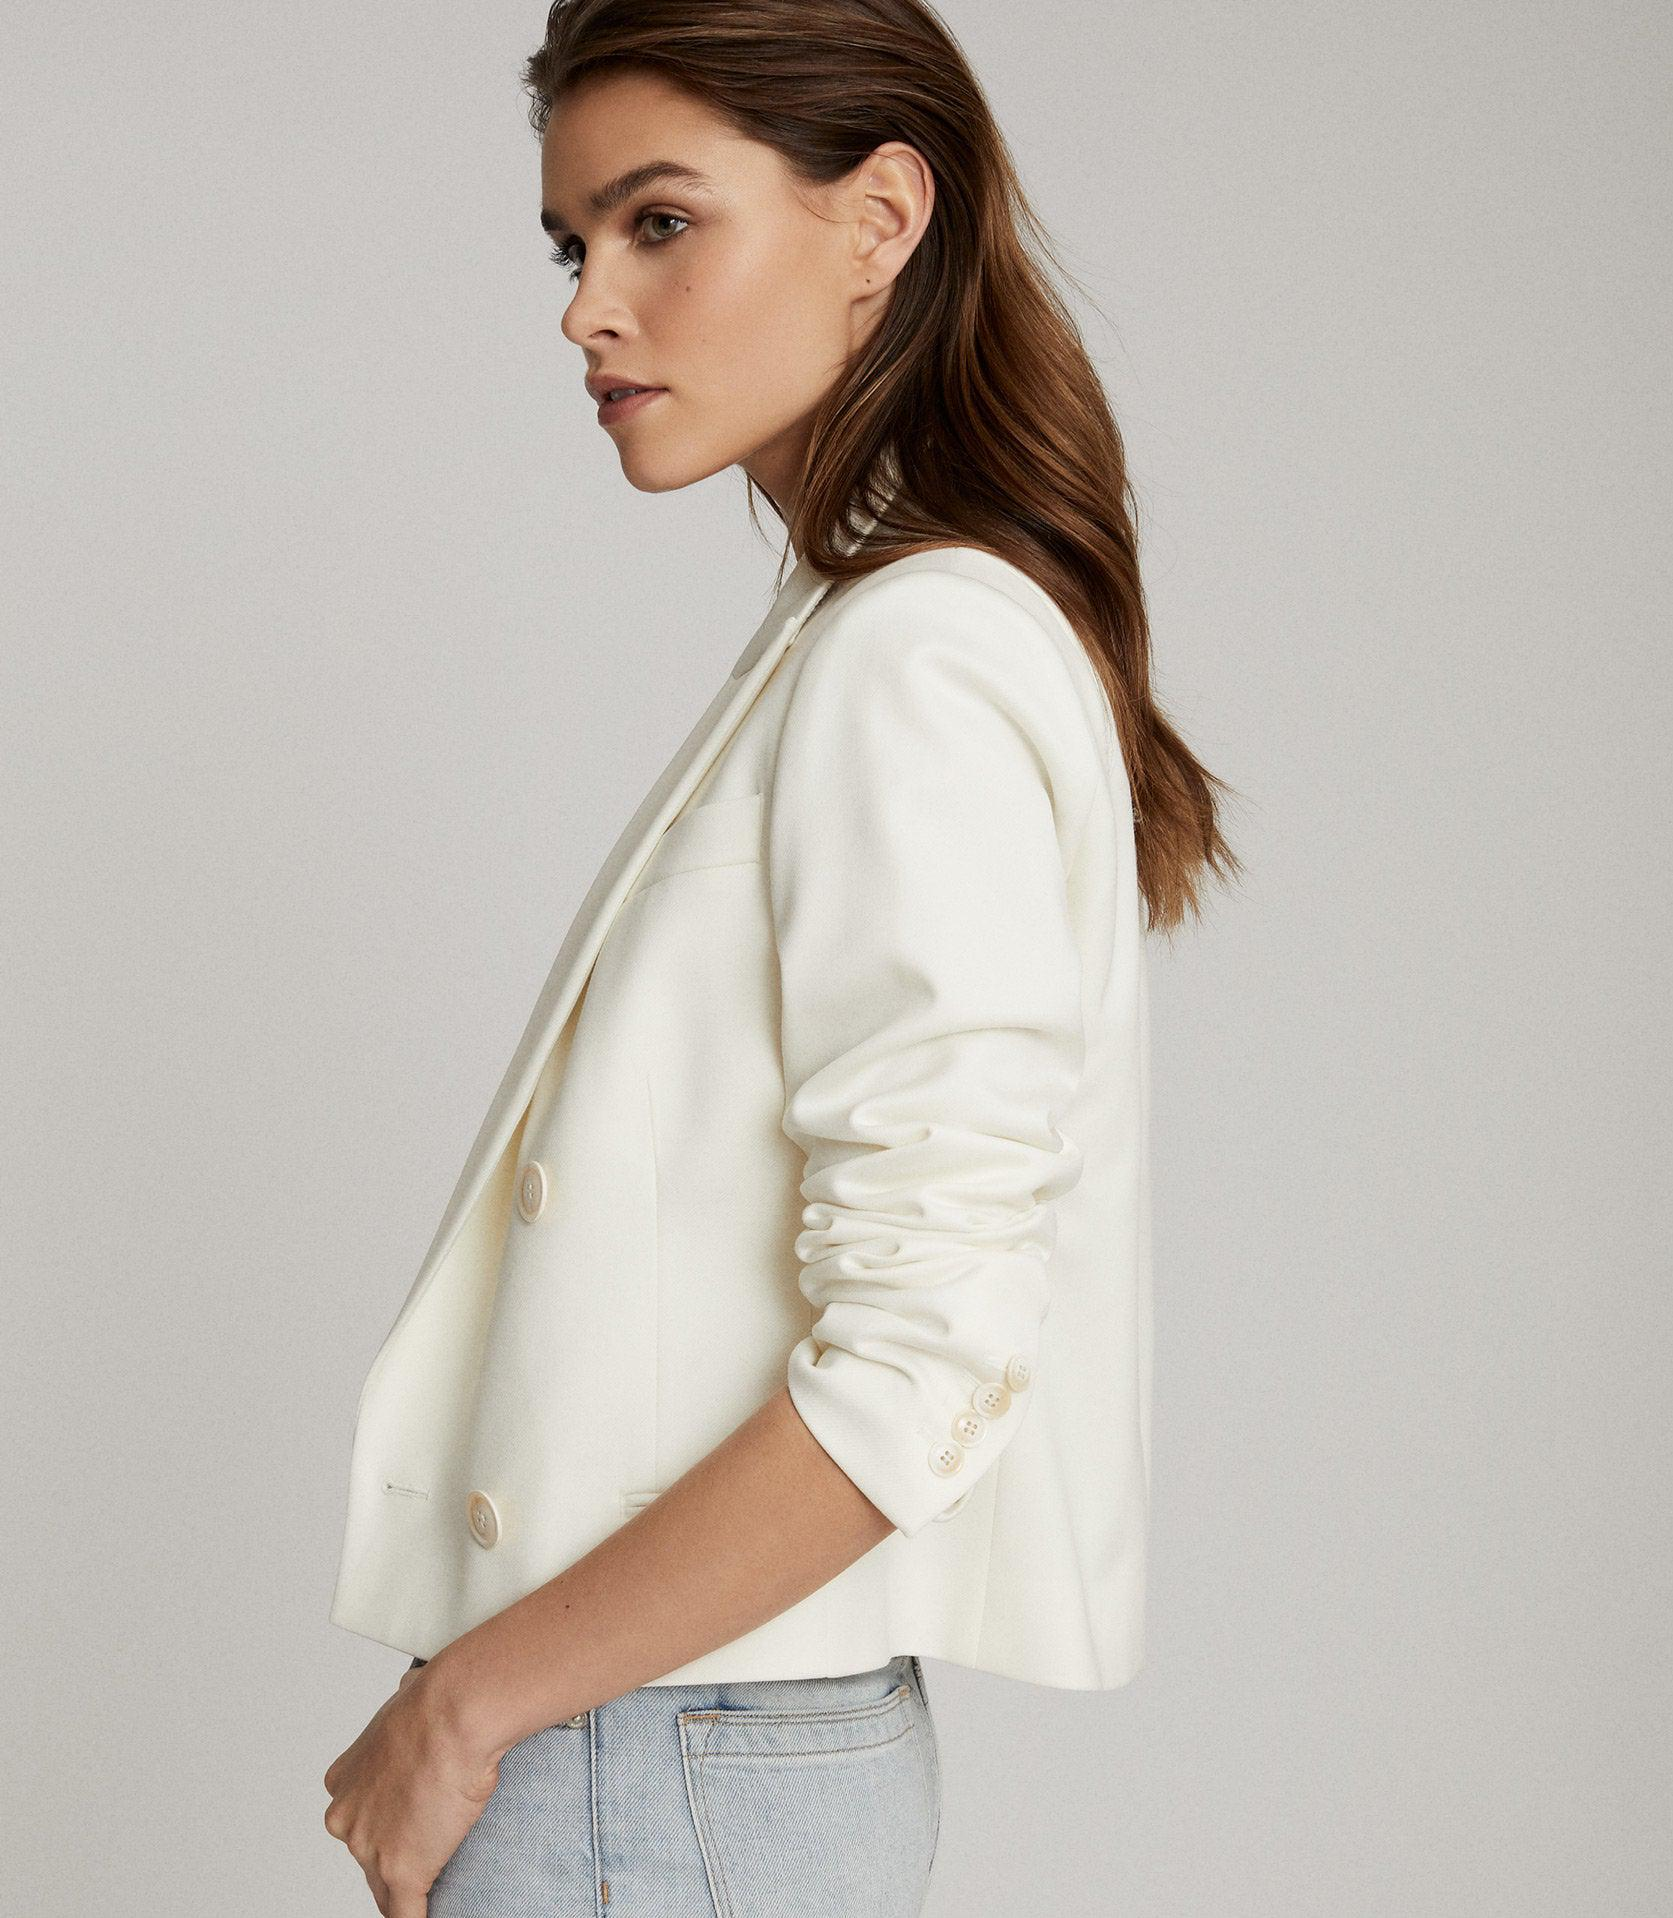 ALEIDA - CROPPED DOUBLE BREASTED BLAZER 2